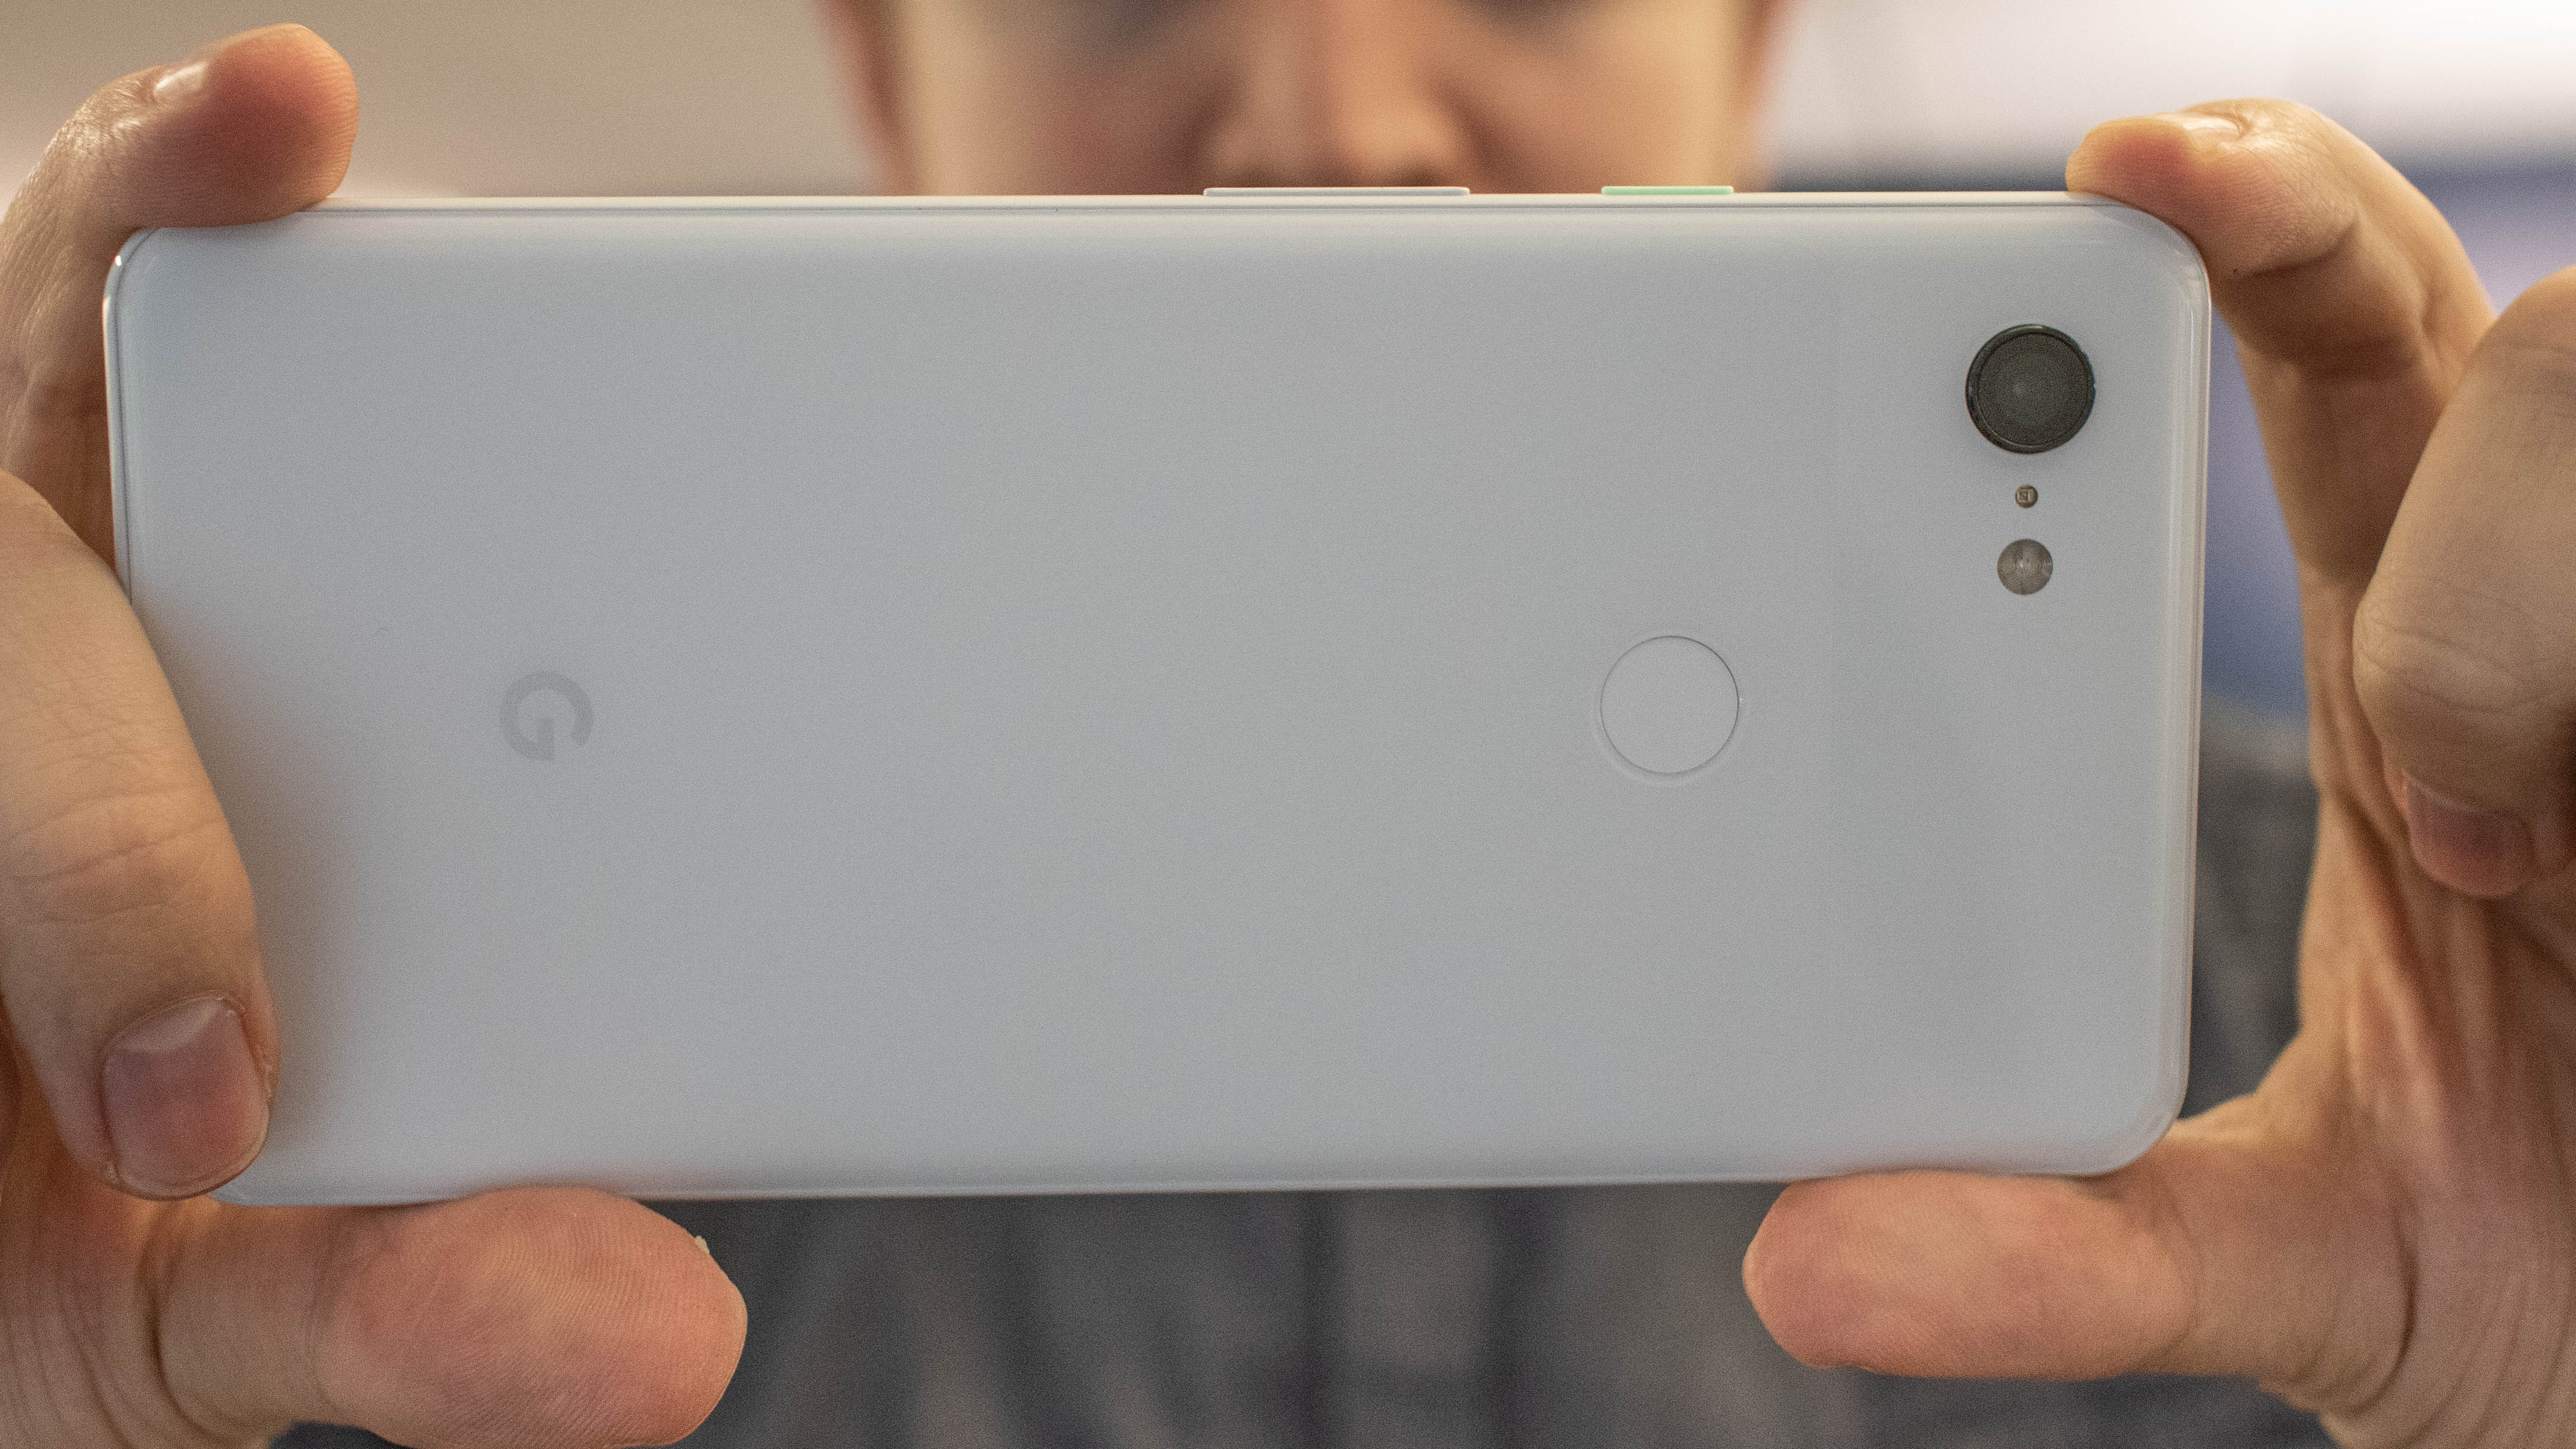 Google Pixel 3 XL Lite leak suggests it'll be no match for Galaxy 10e and iPhone XR